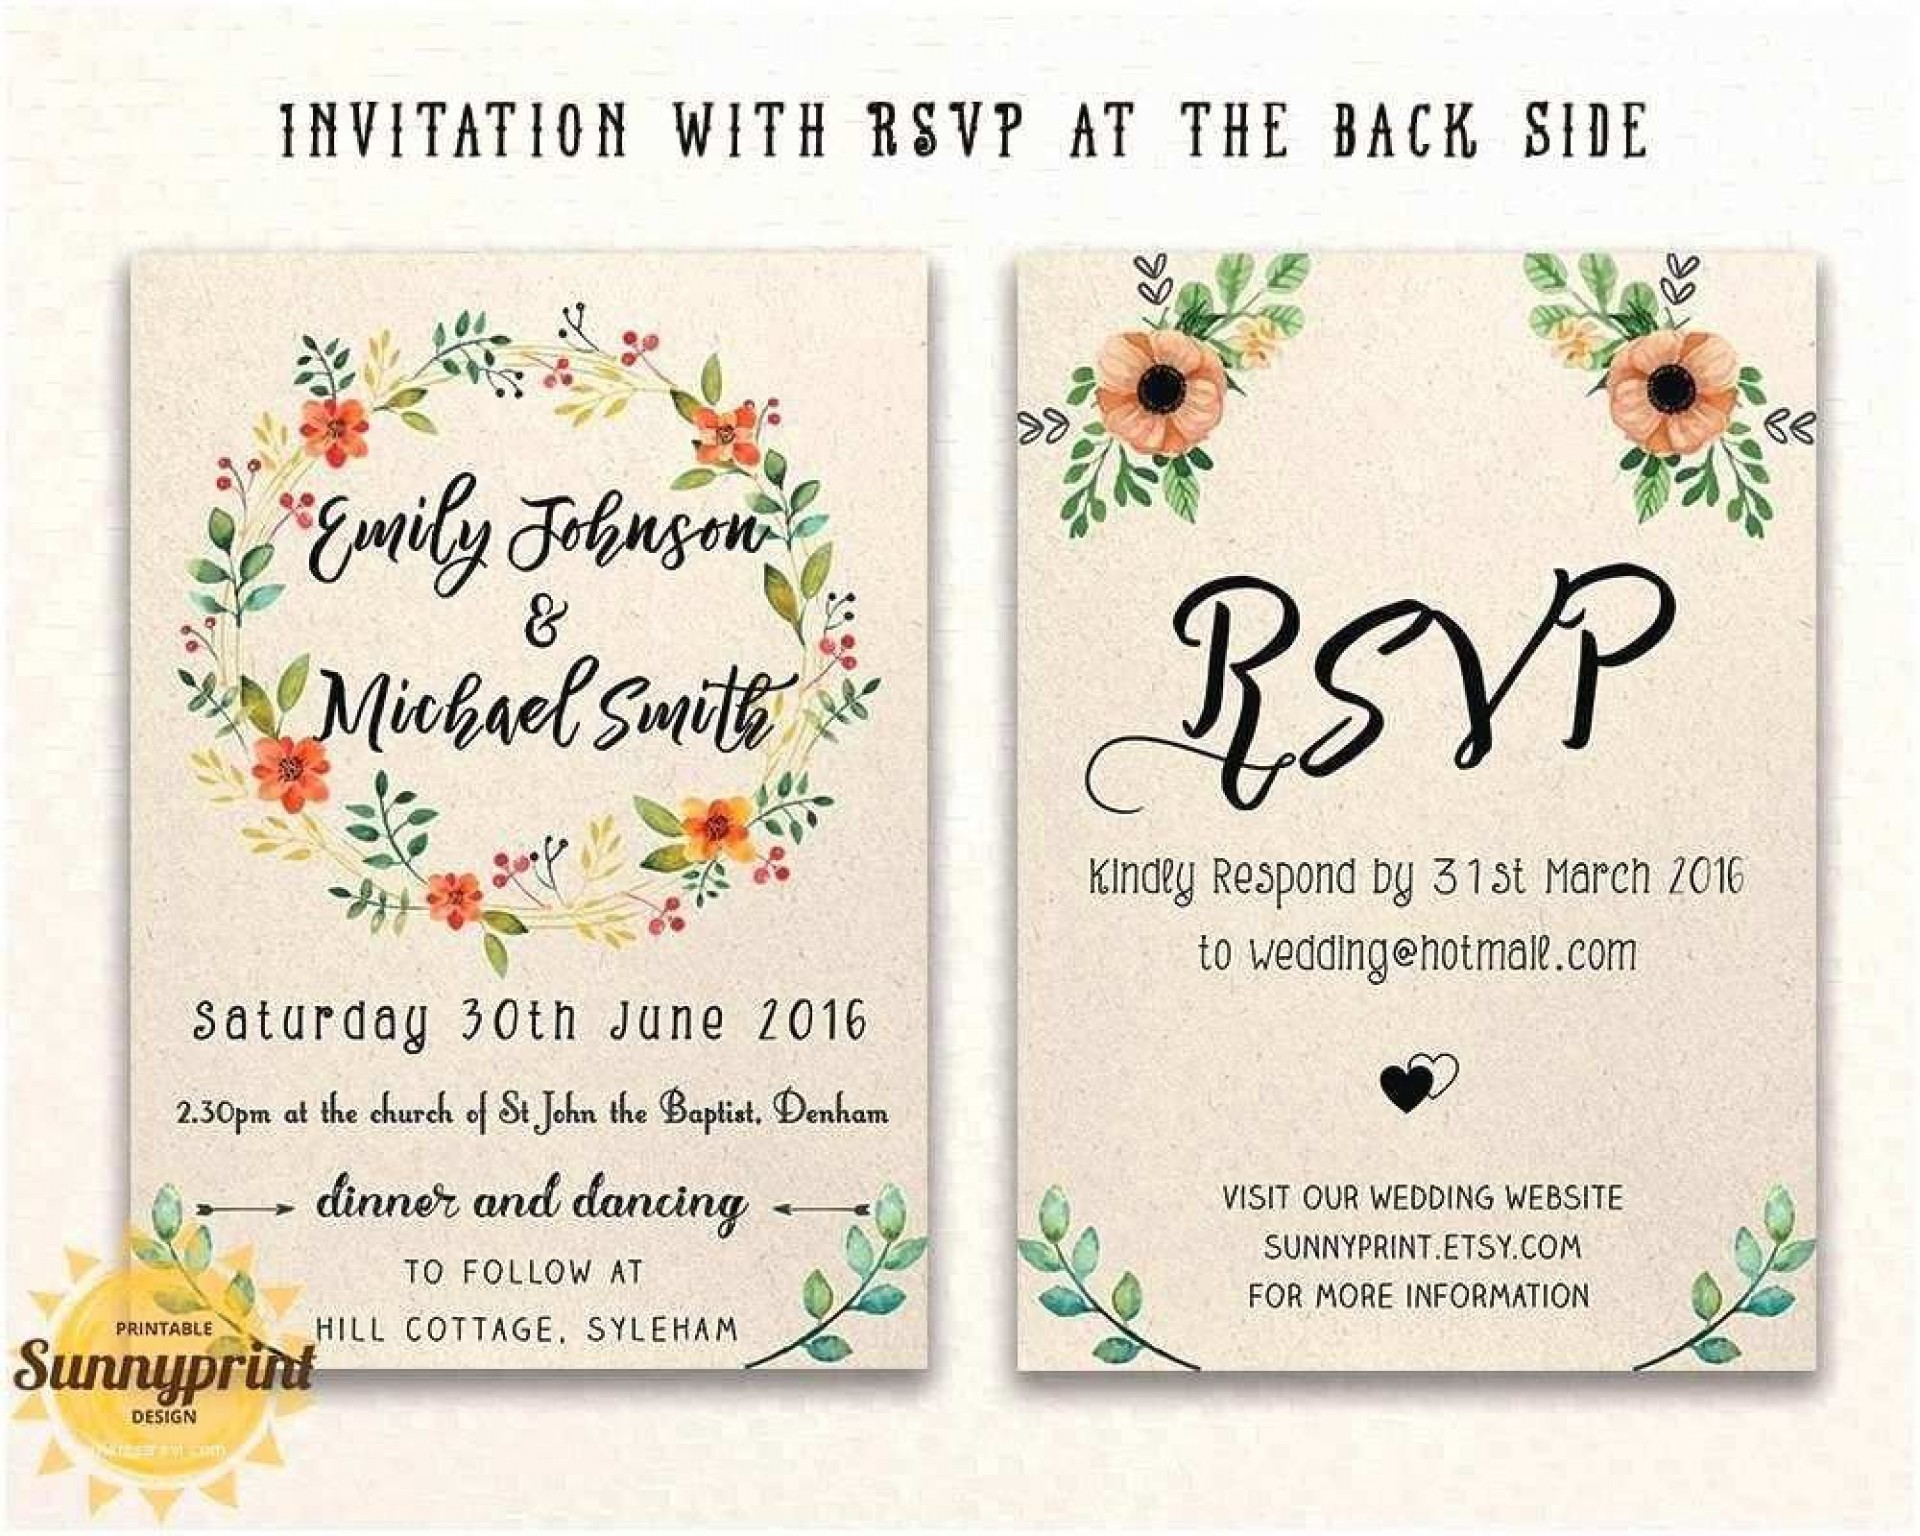 006 Archaicawful Free Email Invitation Template Photo  Ecard Wedding Party Invite For Outlook1920